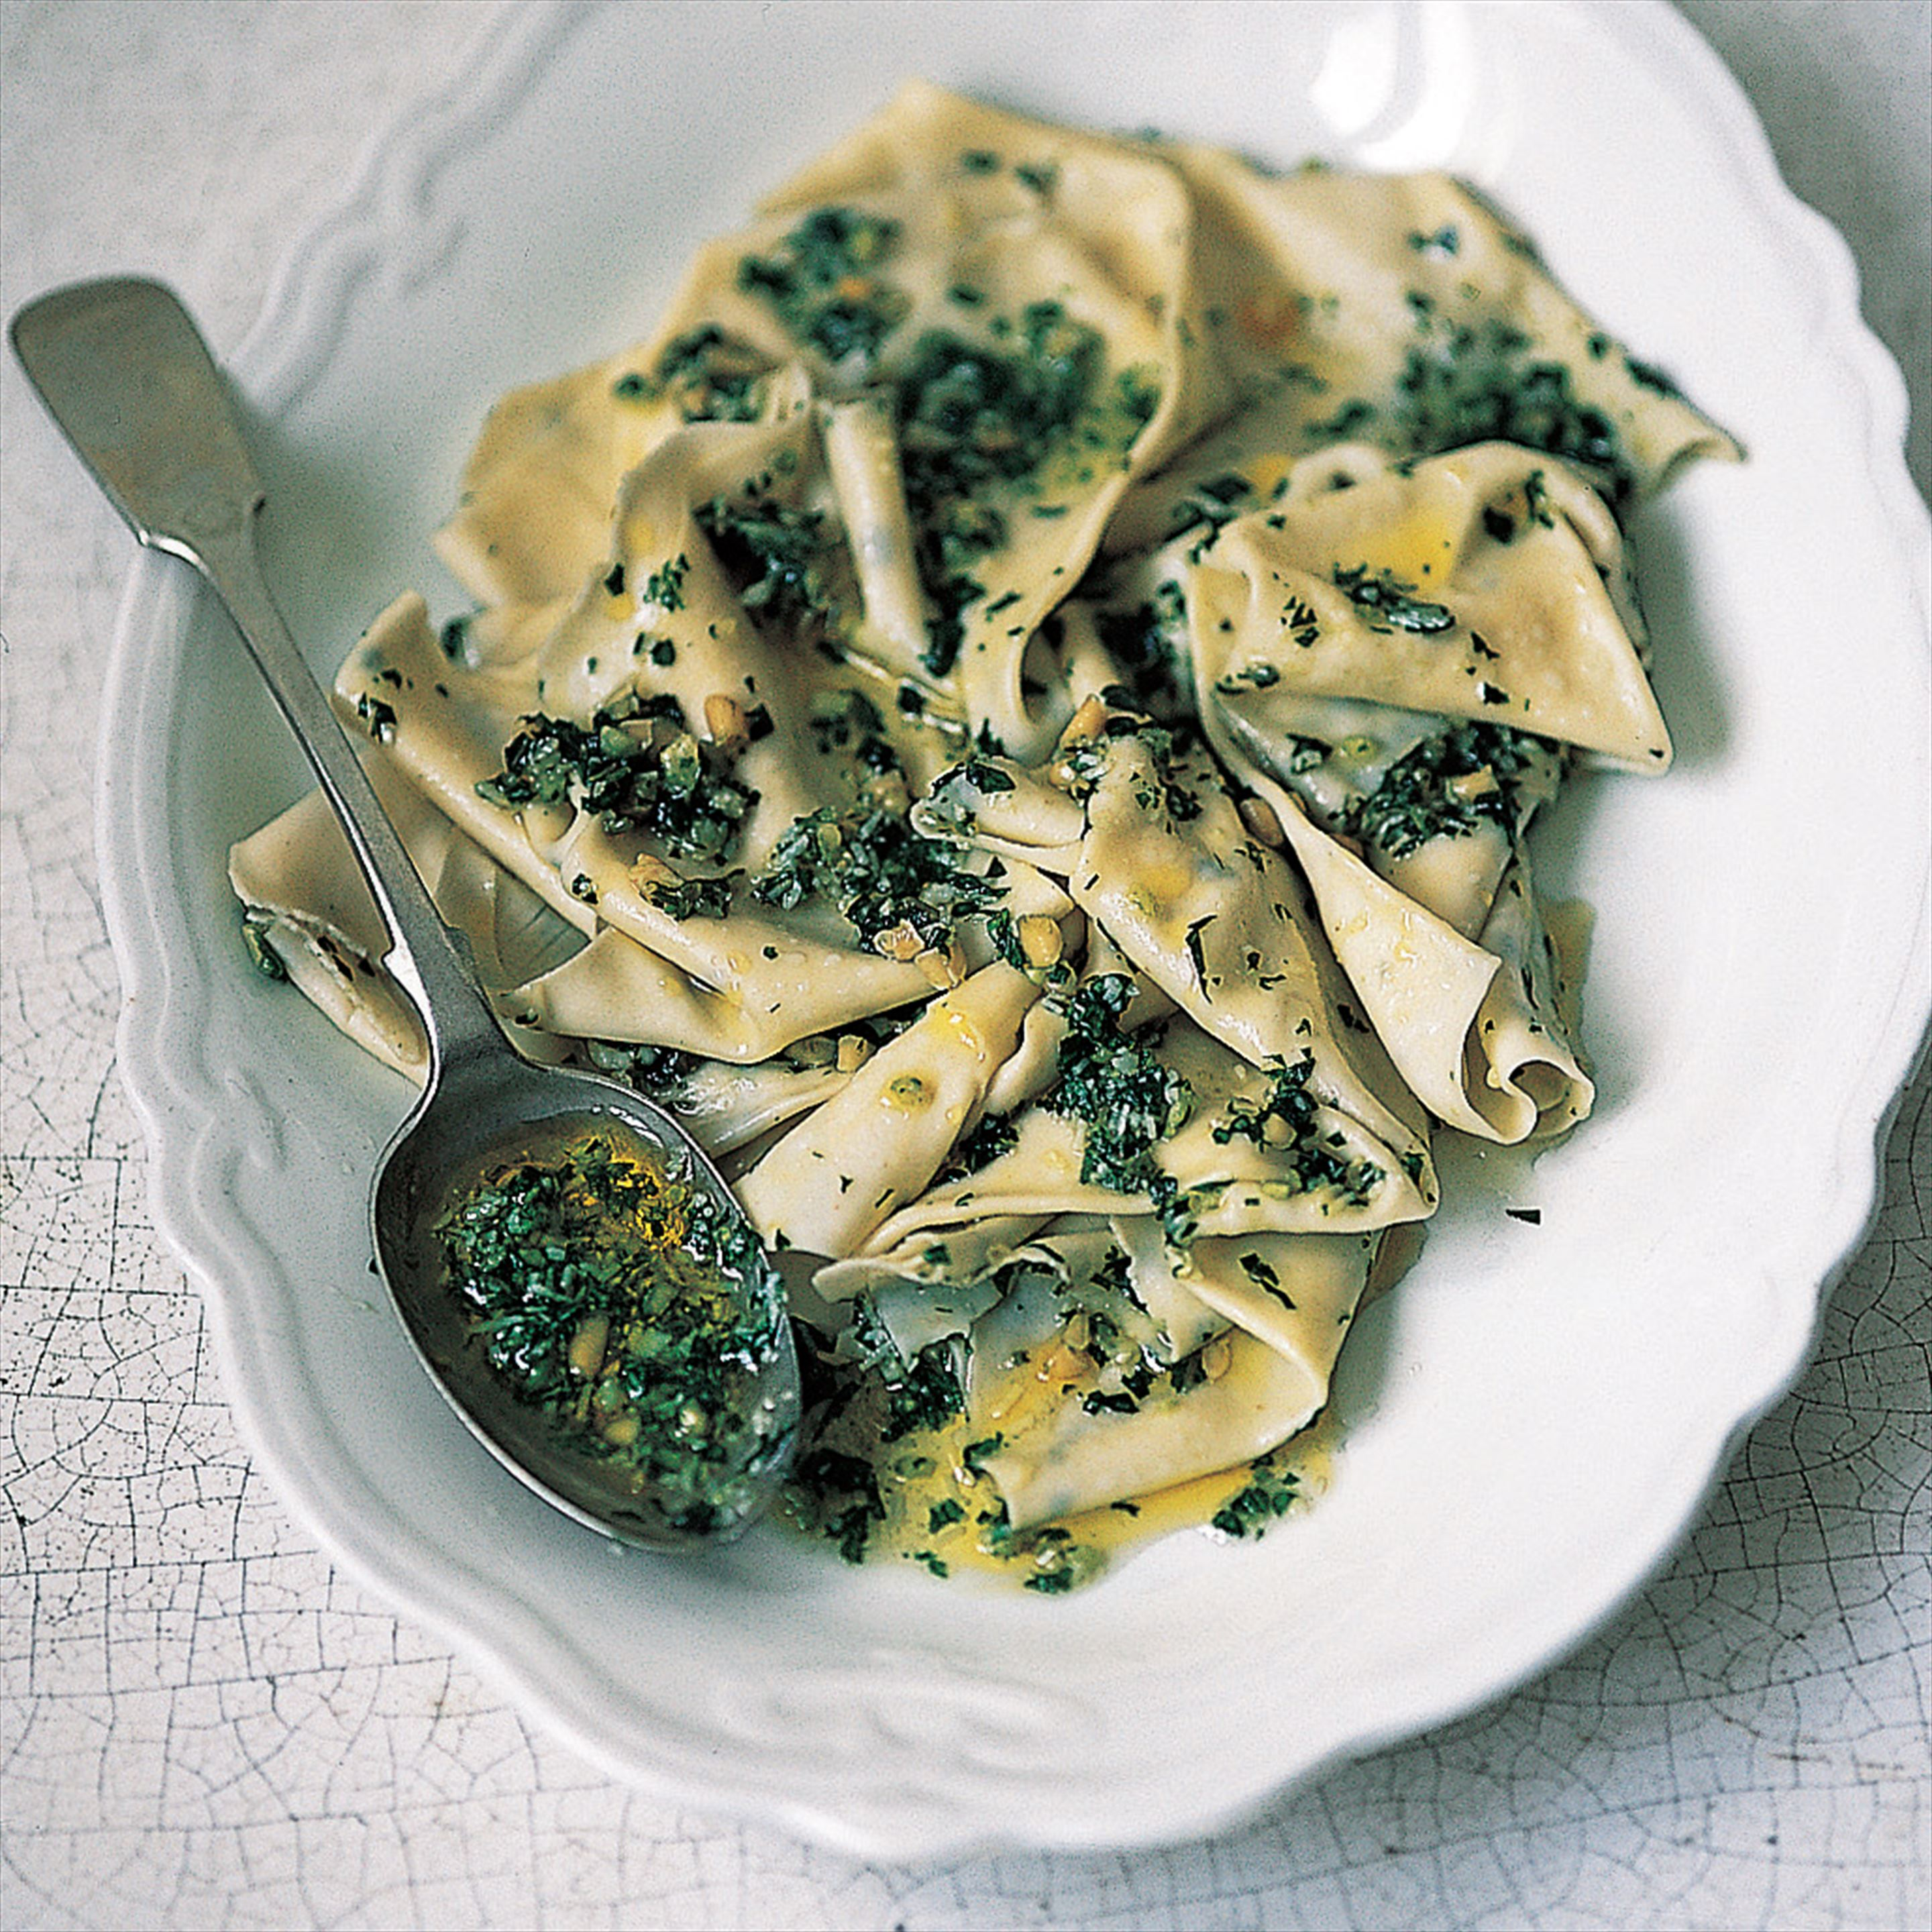 Silk handkerchief pasta sheets with pesto